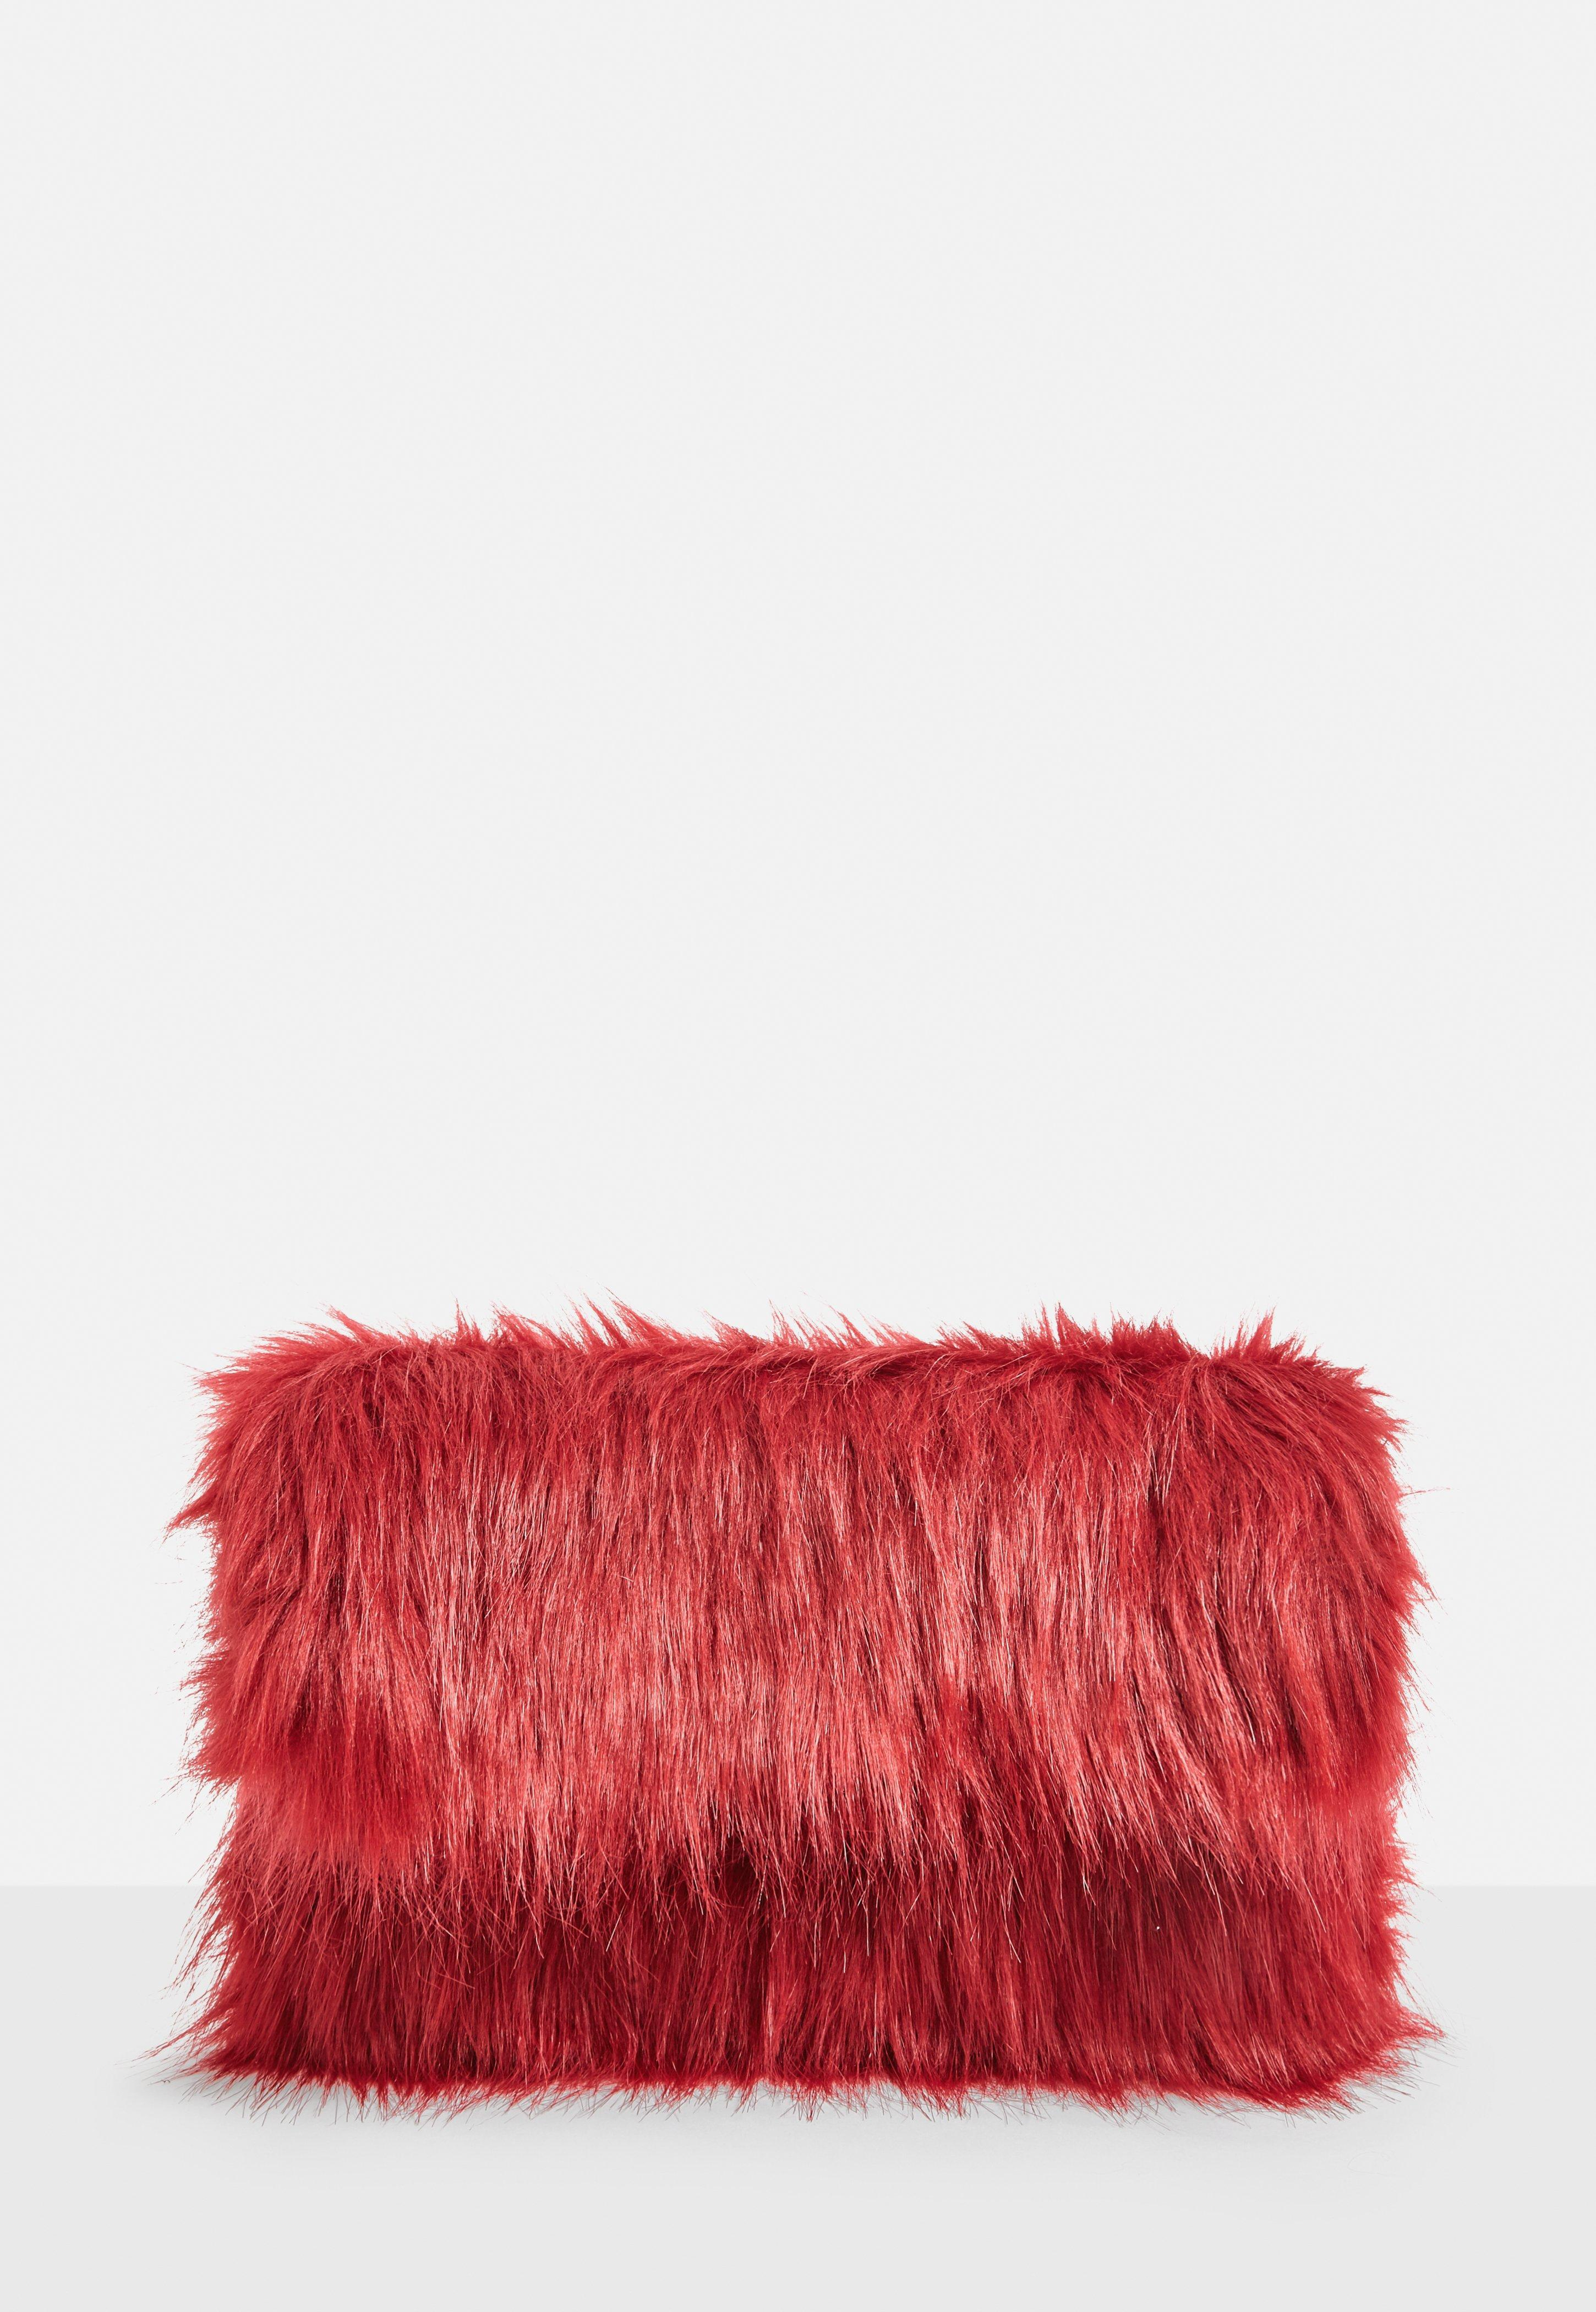 Lyst - Missguided Red Faux Fur Oversized Clutch Bag in Red 2449fd56a04a6